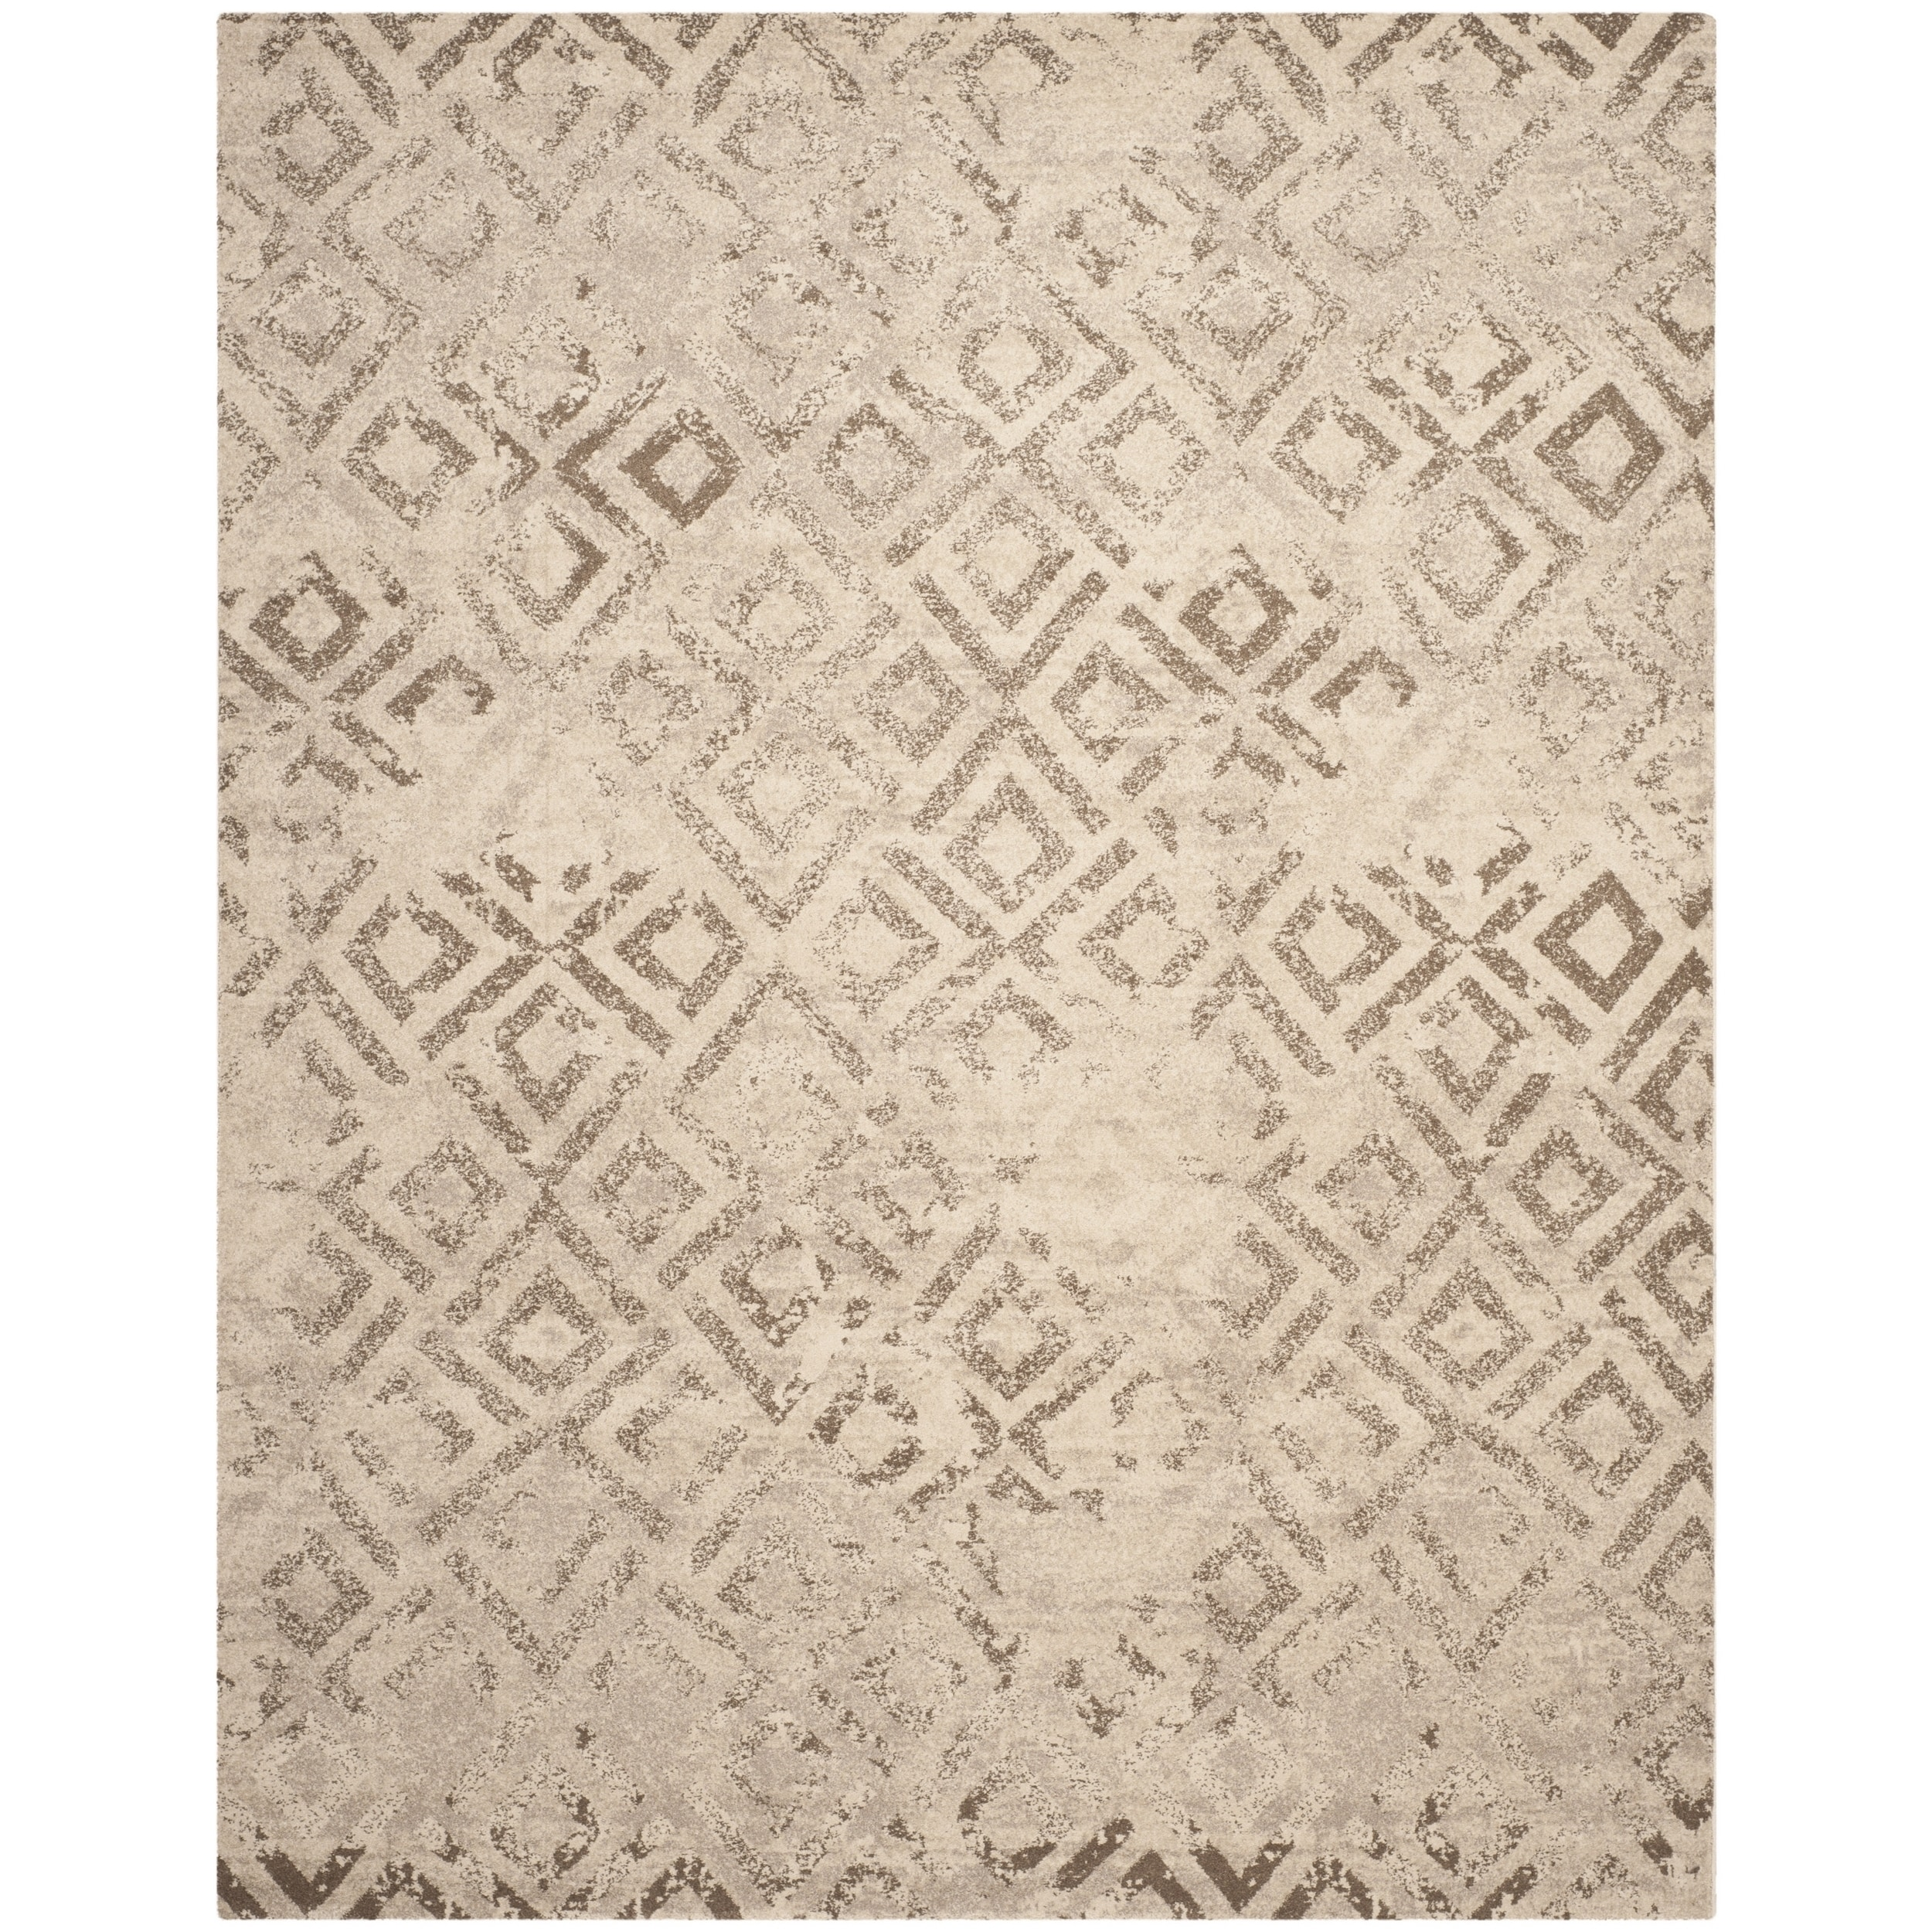 safavieh tunisia ivory rug (' x ') (tunkmk. berber area rugs x  rugs  compare prices at nextag